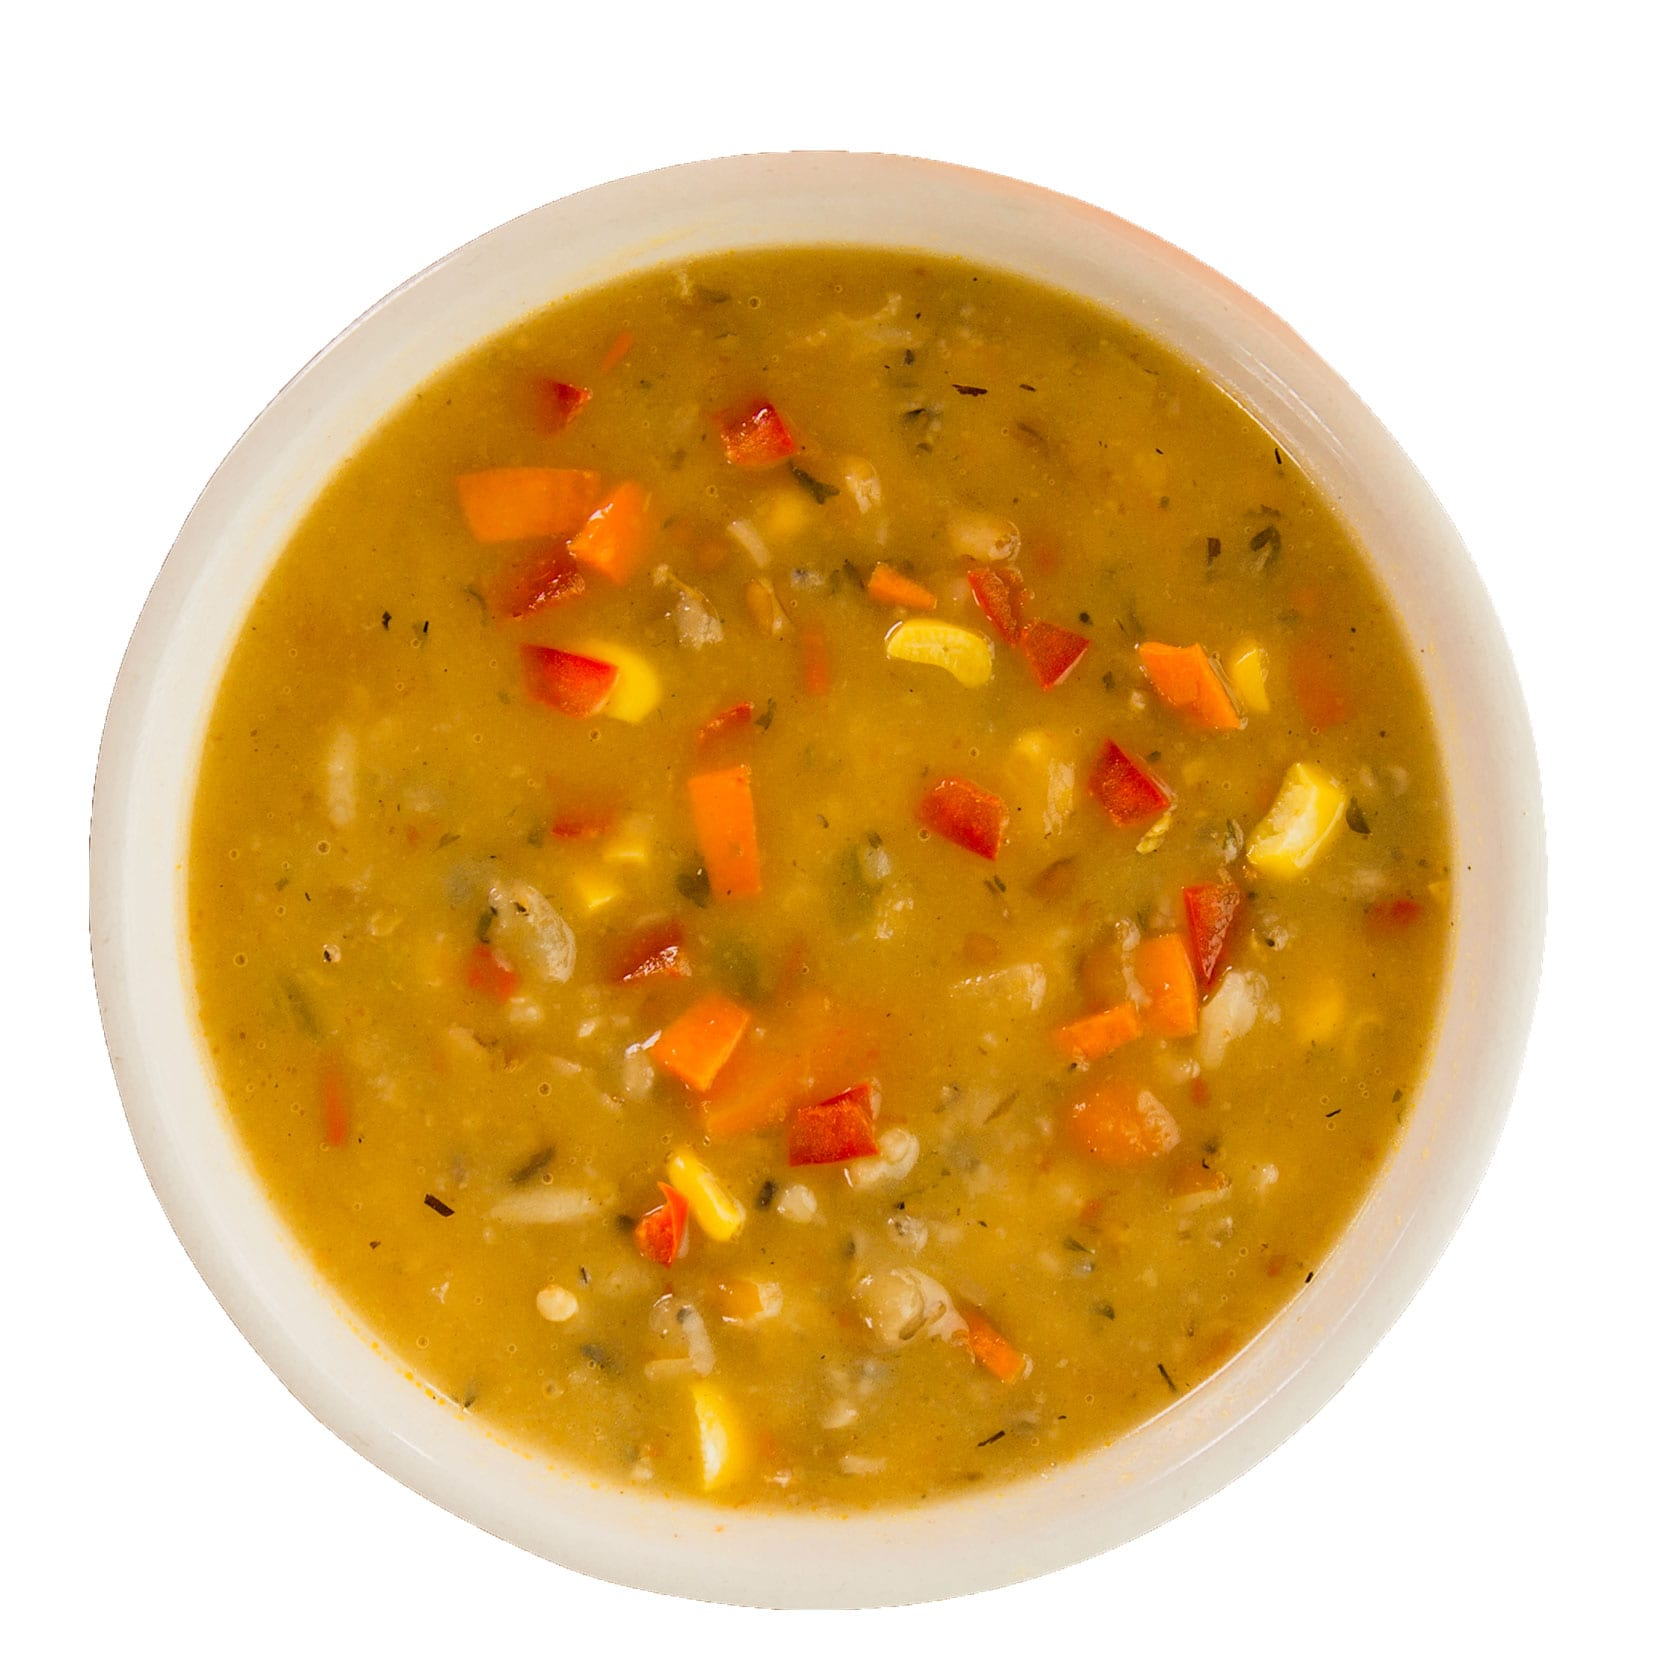 Crushed Red Harvest Grain Soup